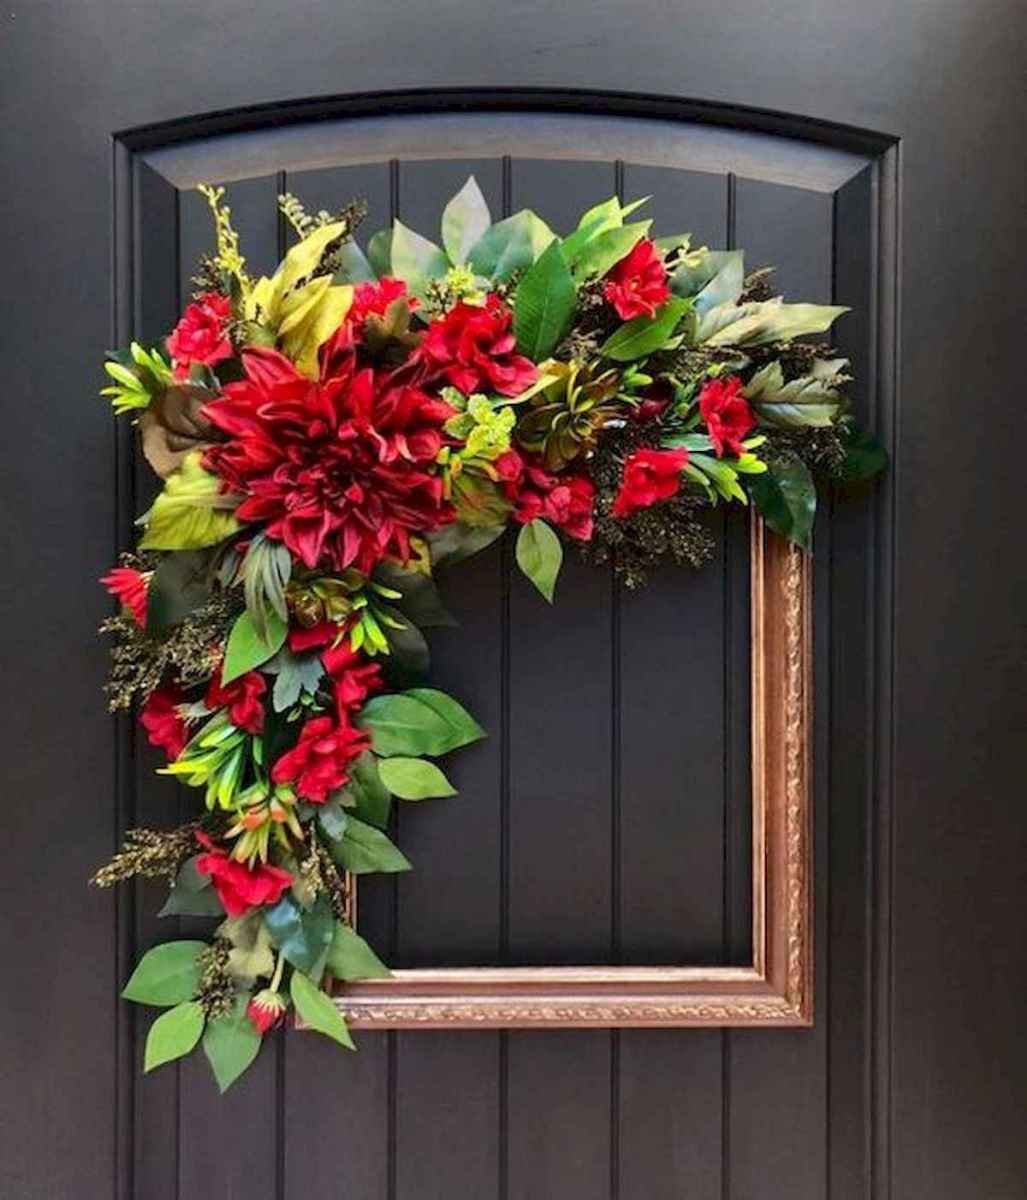 60 Favorite Spring Wreaths for Front Door Design Ideas And Decor (36)